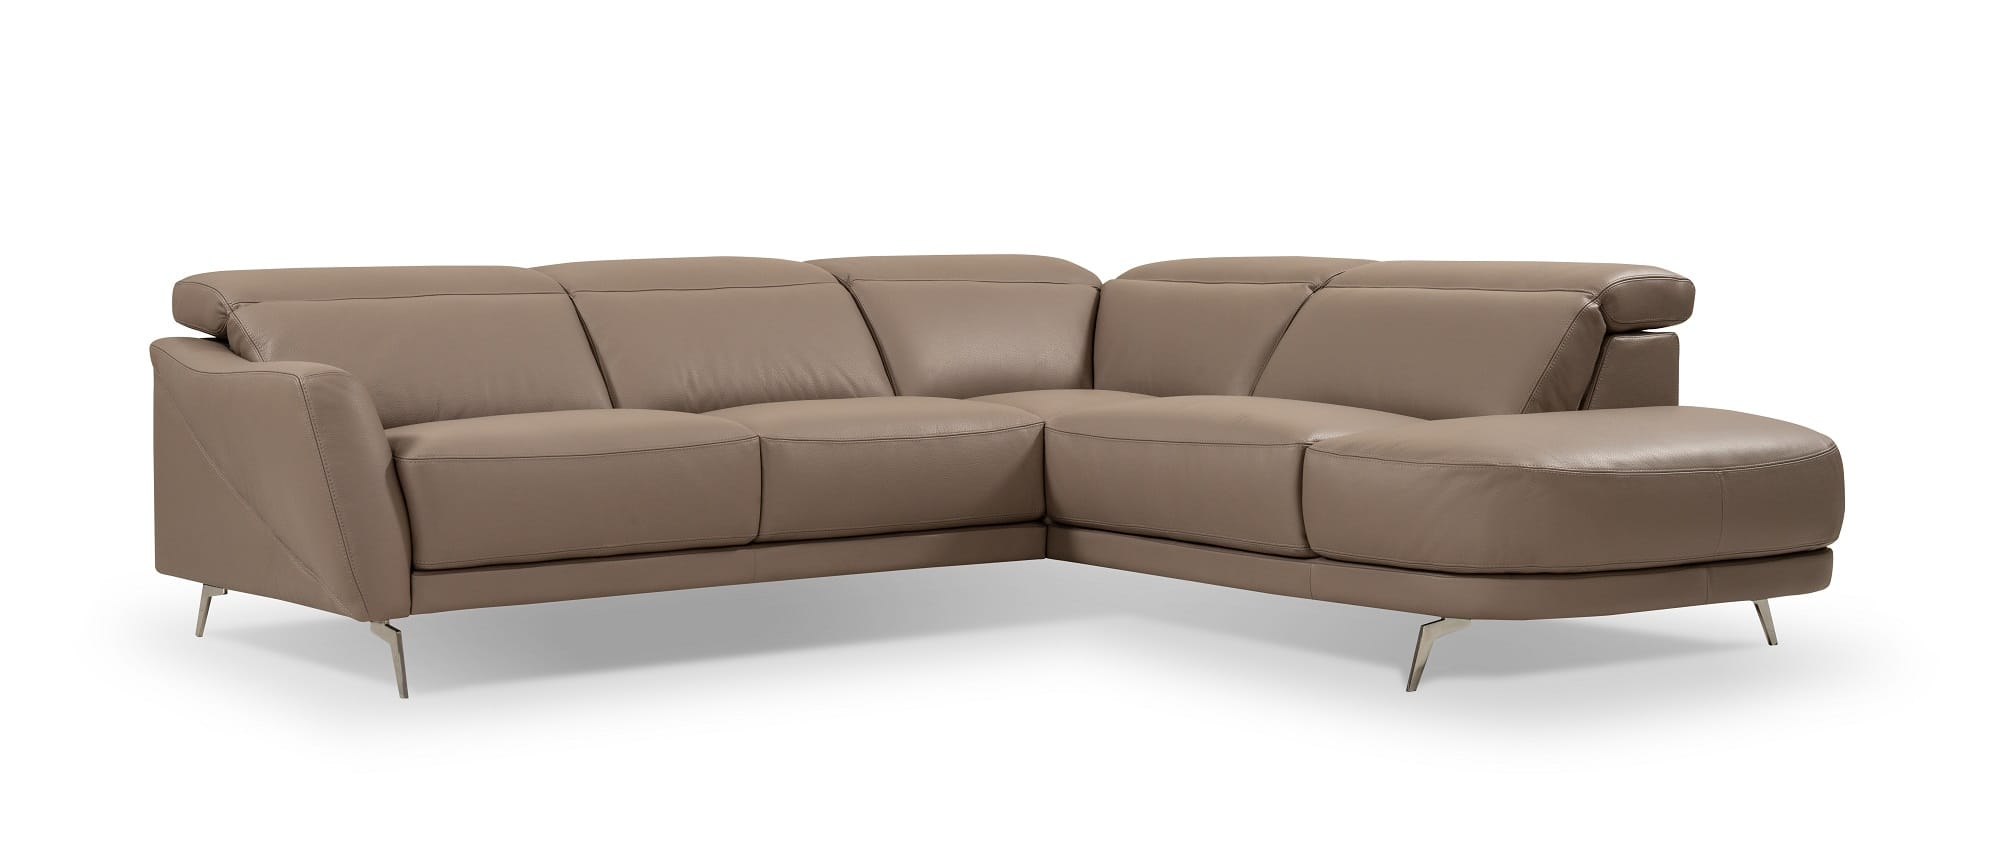 I730 Premium Brown Leather Sectional Sofa by J&M Furniture